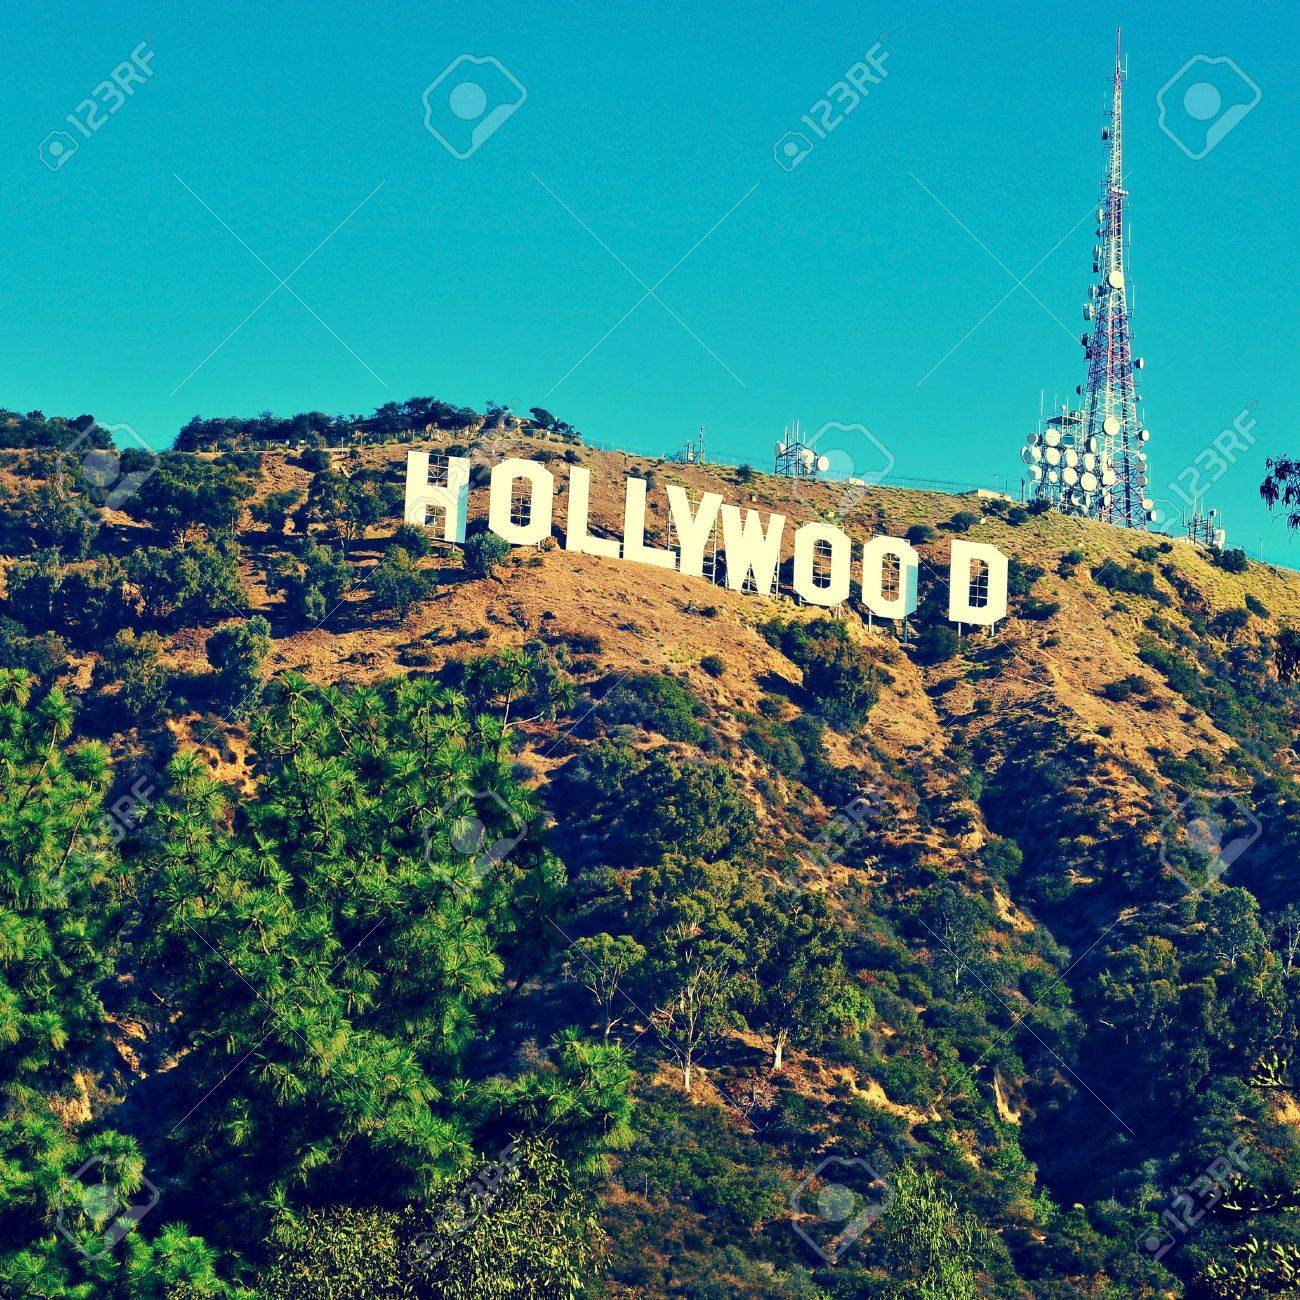 Los Angeles, US - October 17, 2011: Hollywood sign in Los Angeles. The sign, located in Mount Lee, spells out the name of the area in 45-foot-tall and 350-foot-long white letters Stock Photo - 17261456